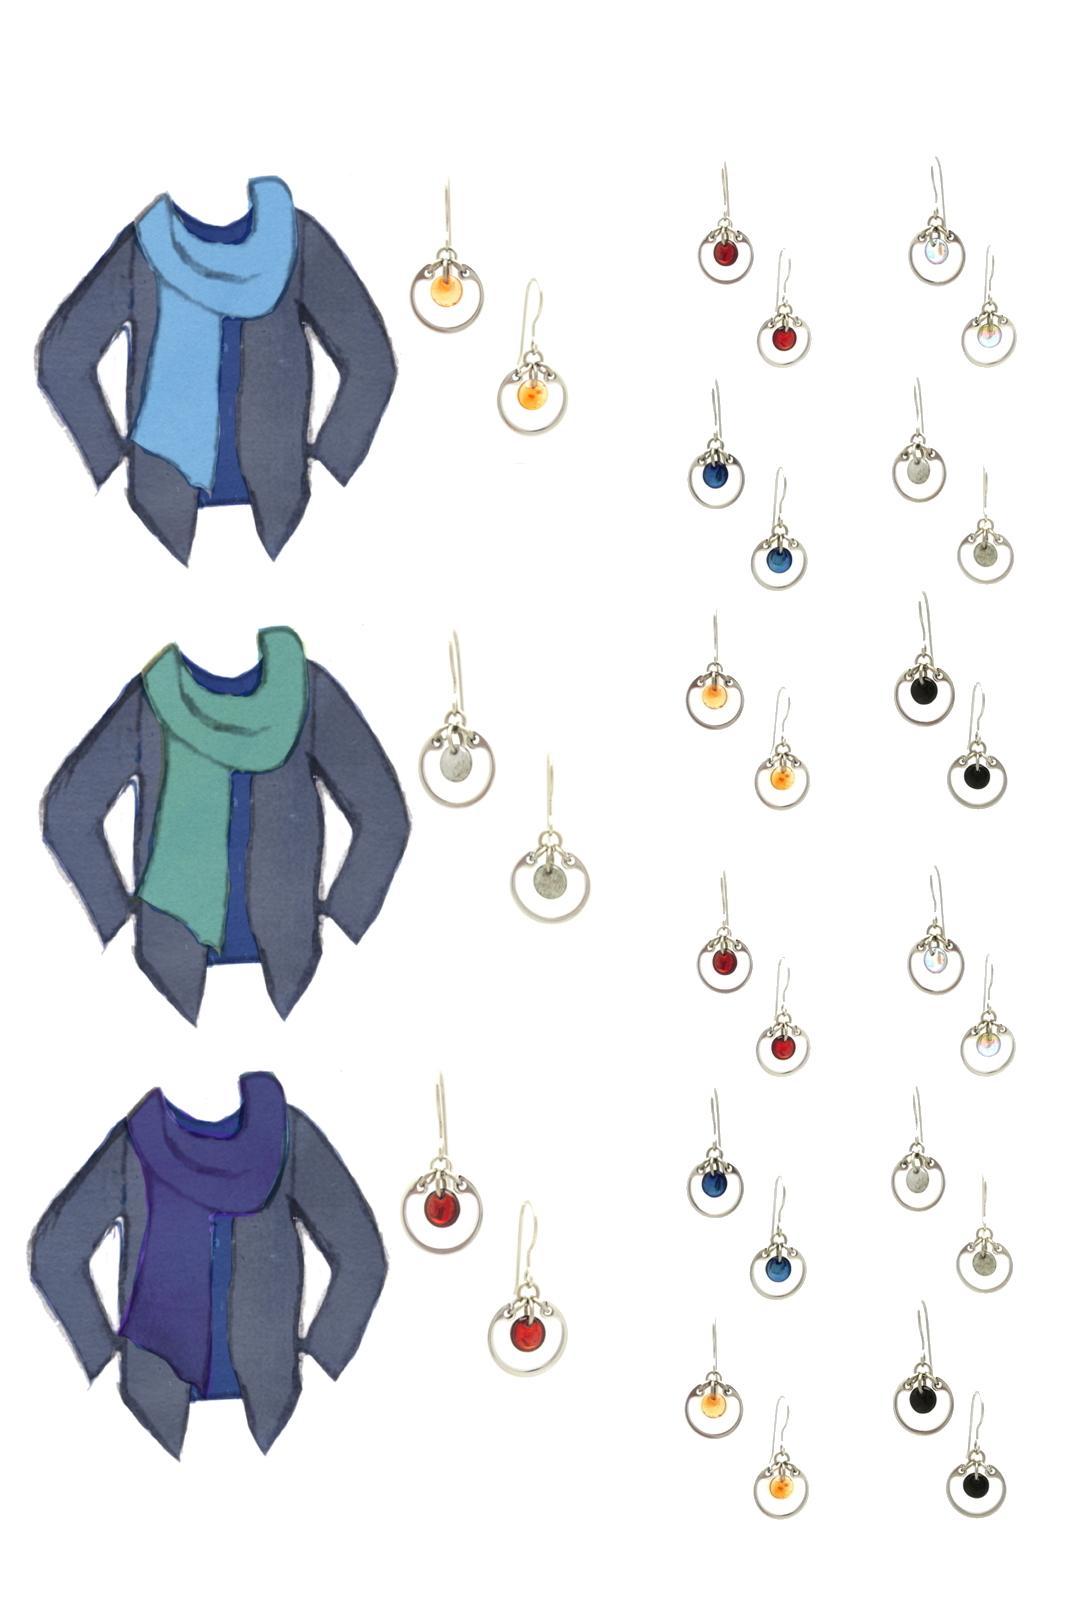 3 style sketches: a dark blue tee with indigo cardigan & sky blue, turquoise, or violet scarf, with Wraptillion's modern small circle earrings in black, red, navy blue, orange, gray, and pale rainbow